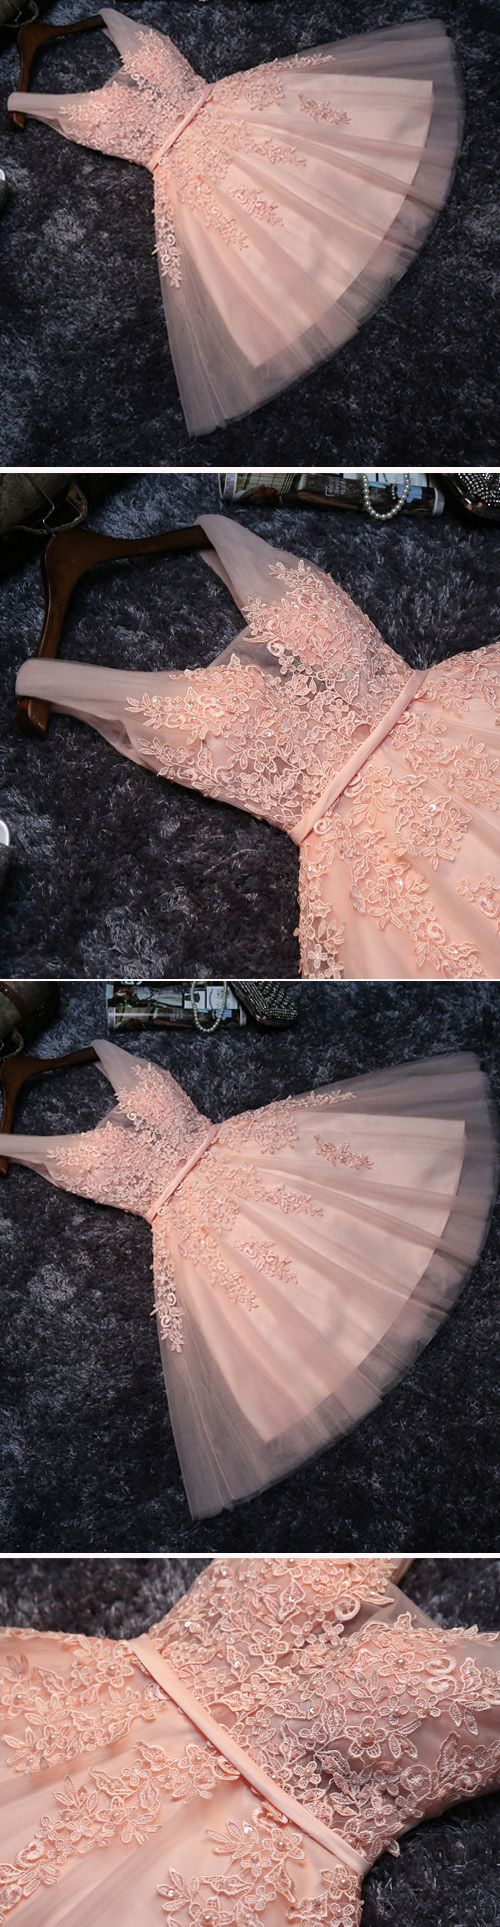 Homecoming Dress Short,Prom Dress Short,Cheap Prom Dresses,Cheap Homecoming Dresses,Cheap Evening Dress,Homecoming Dresses Cheap,Quality Dresses,Party Dress,Fashion Prom Dress,Prom Gowns,Dresses for Girls,Blush Pink Short Bridesmaid Dress,Prom Dress,Lace Appliqued Tulle Homecoming Dress,SH60